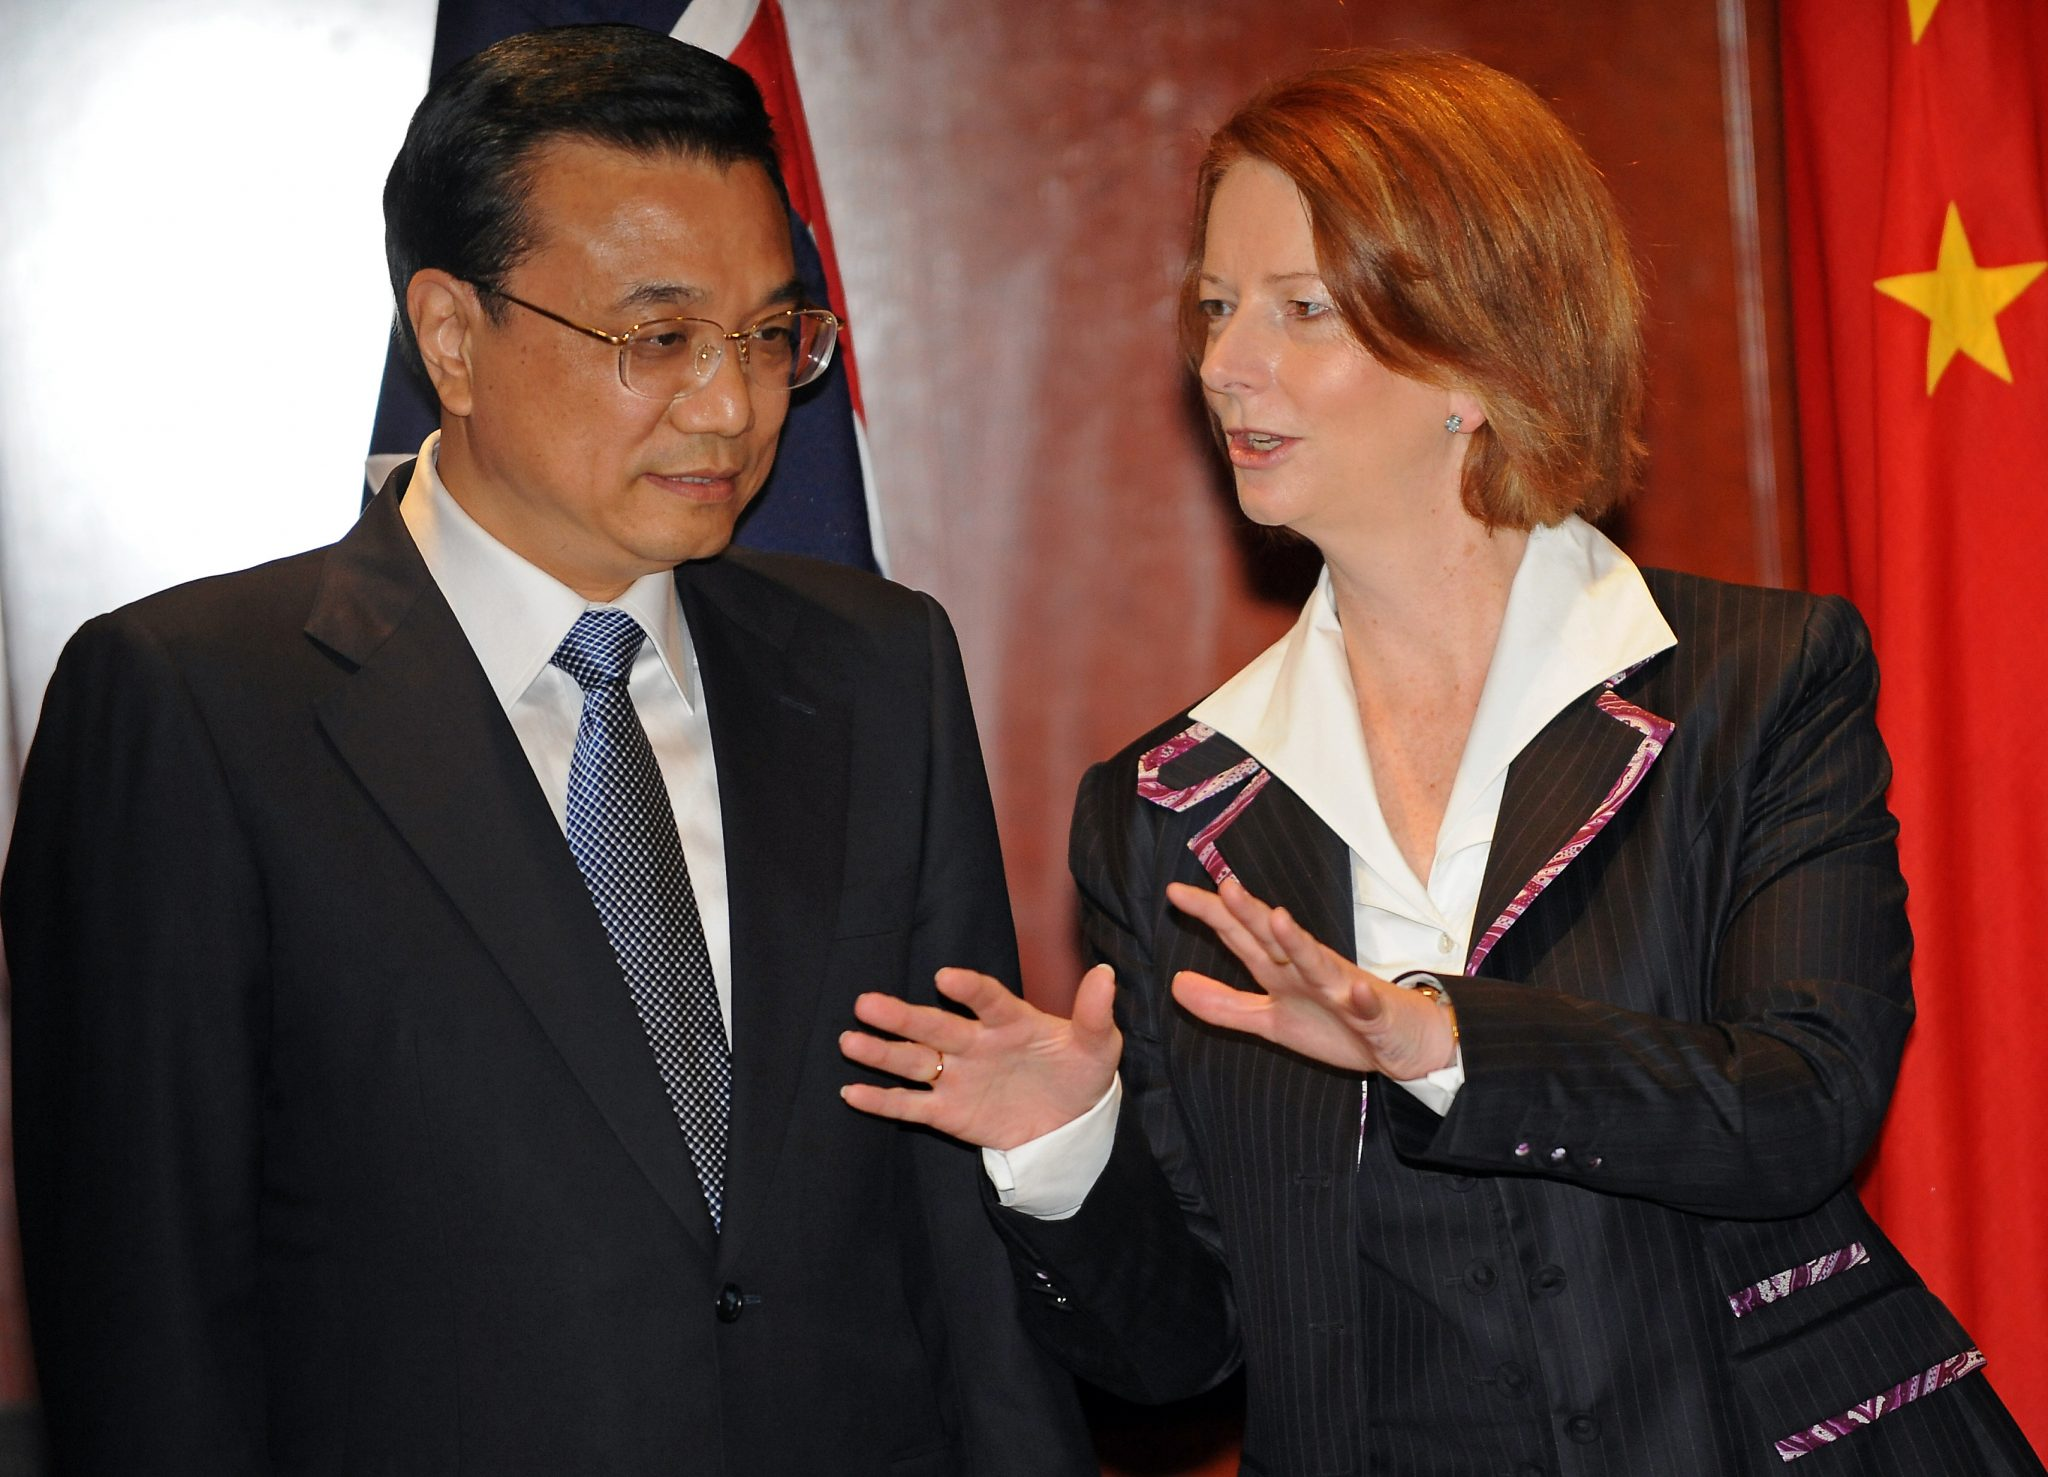 Prime Minister of Australia, Julia Gillard (R), chats the Executive Vice-Premier of China, Li Keqiang (L), during a bilateral meeting in Sydney. (Photo: AAP)